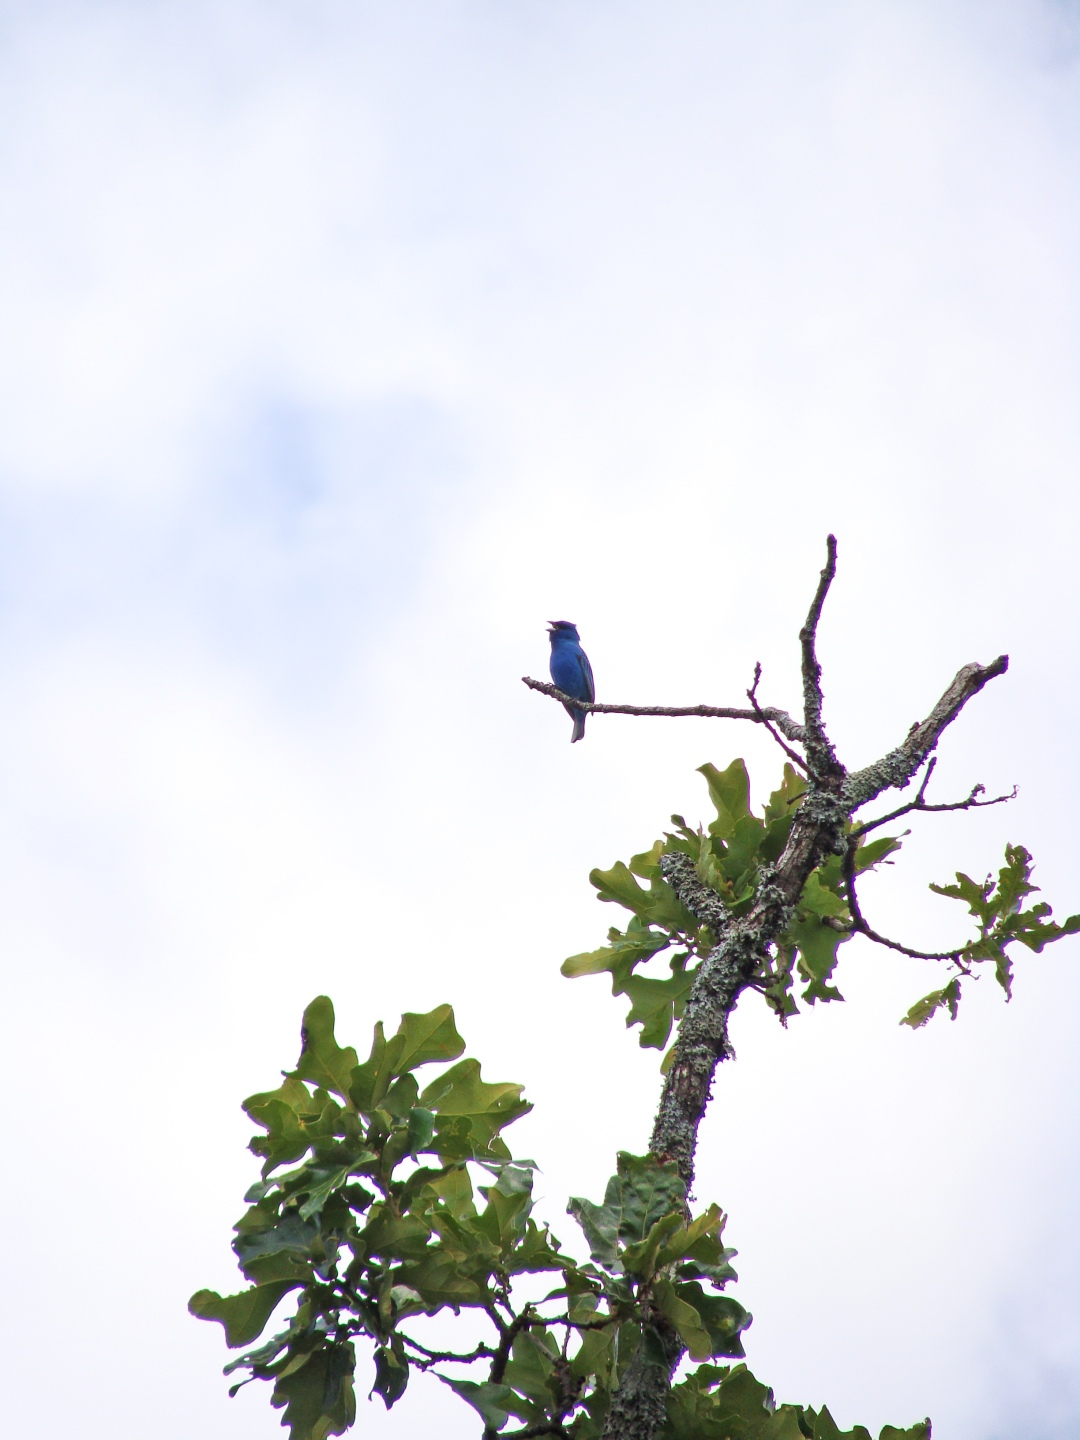 May 21, 2016, Indigo bunting on a windy day.